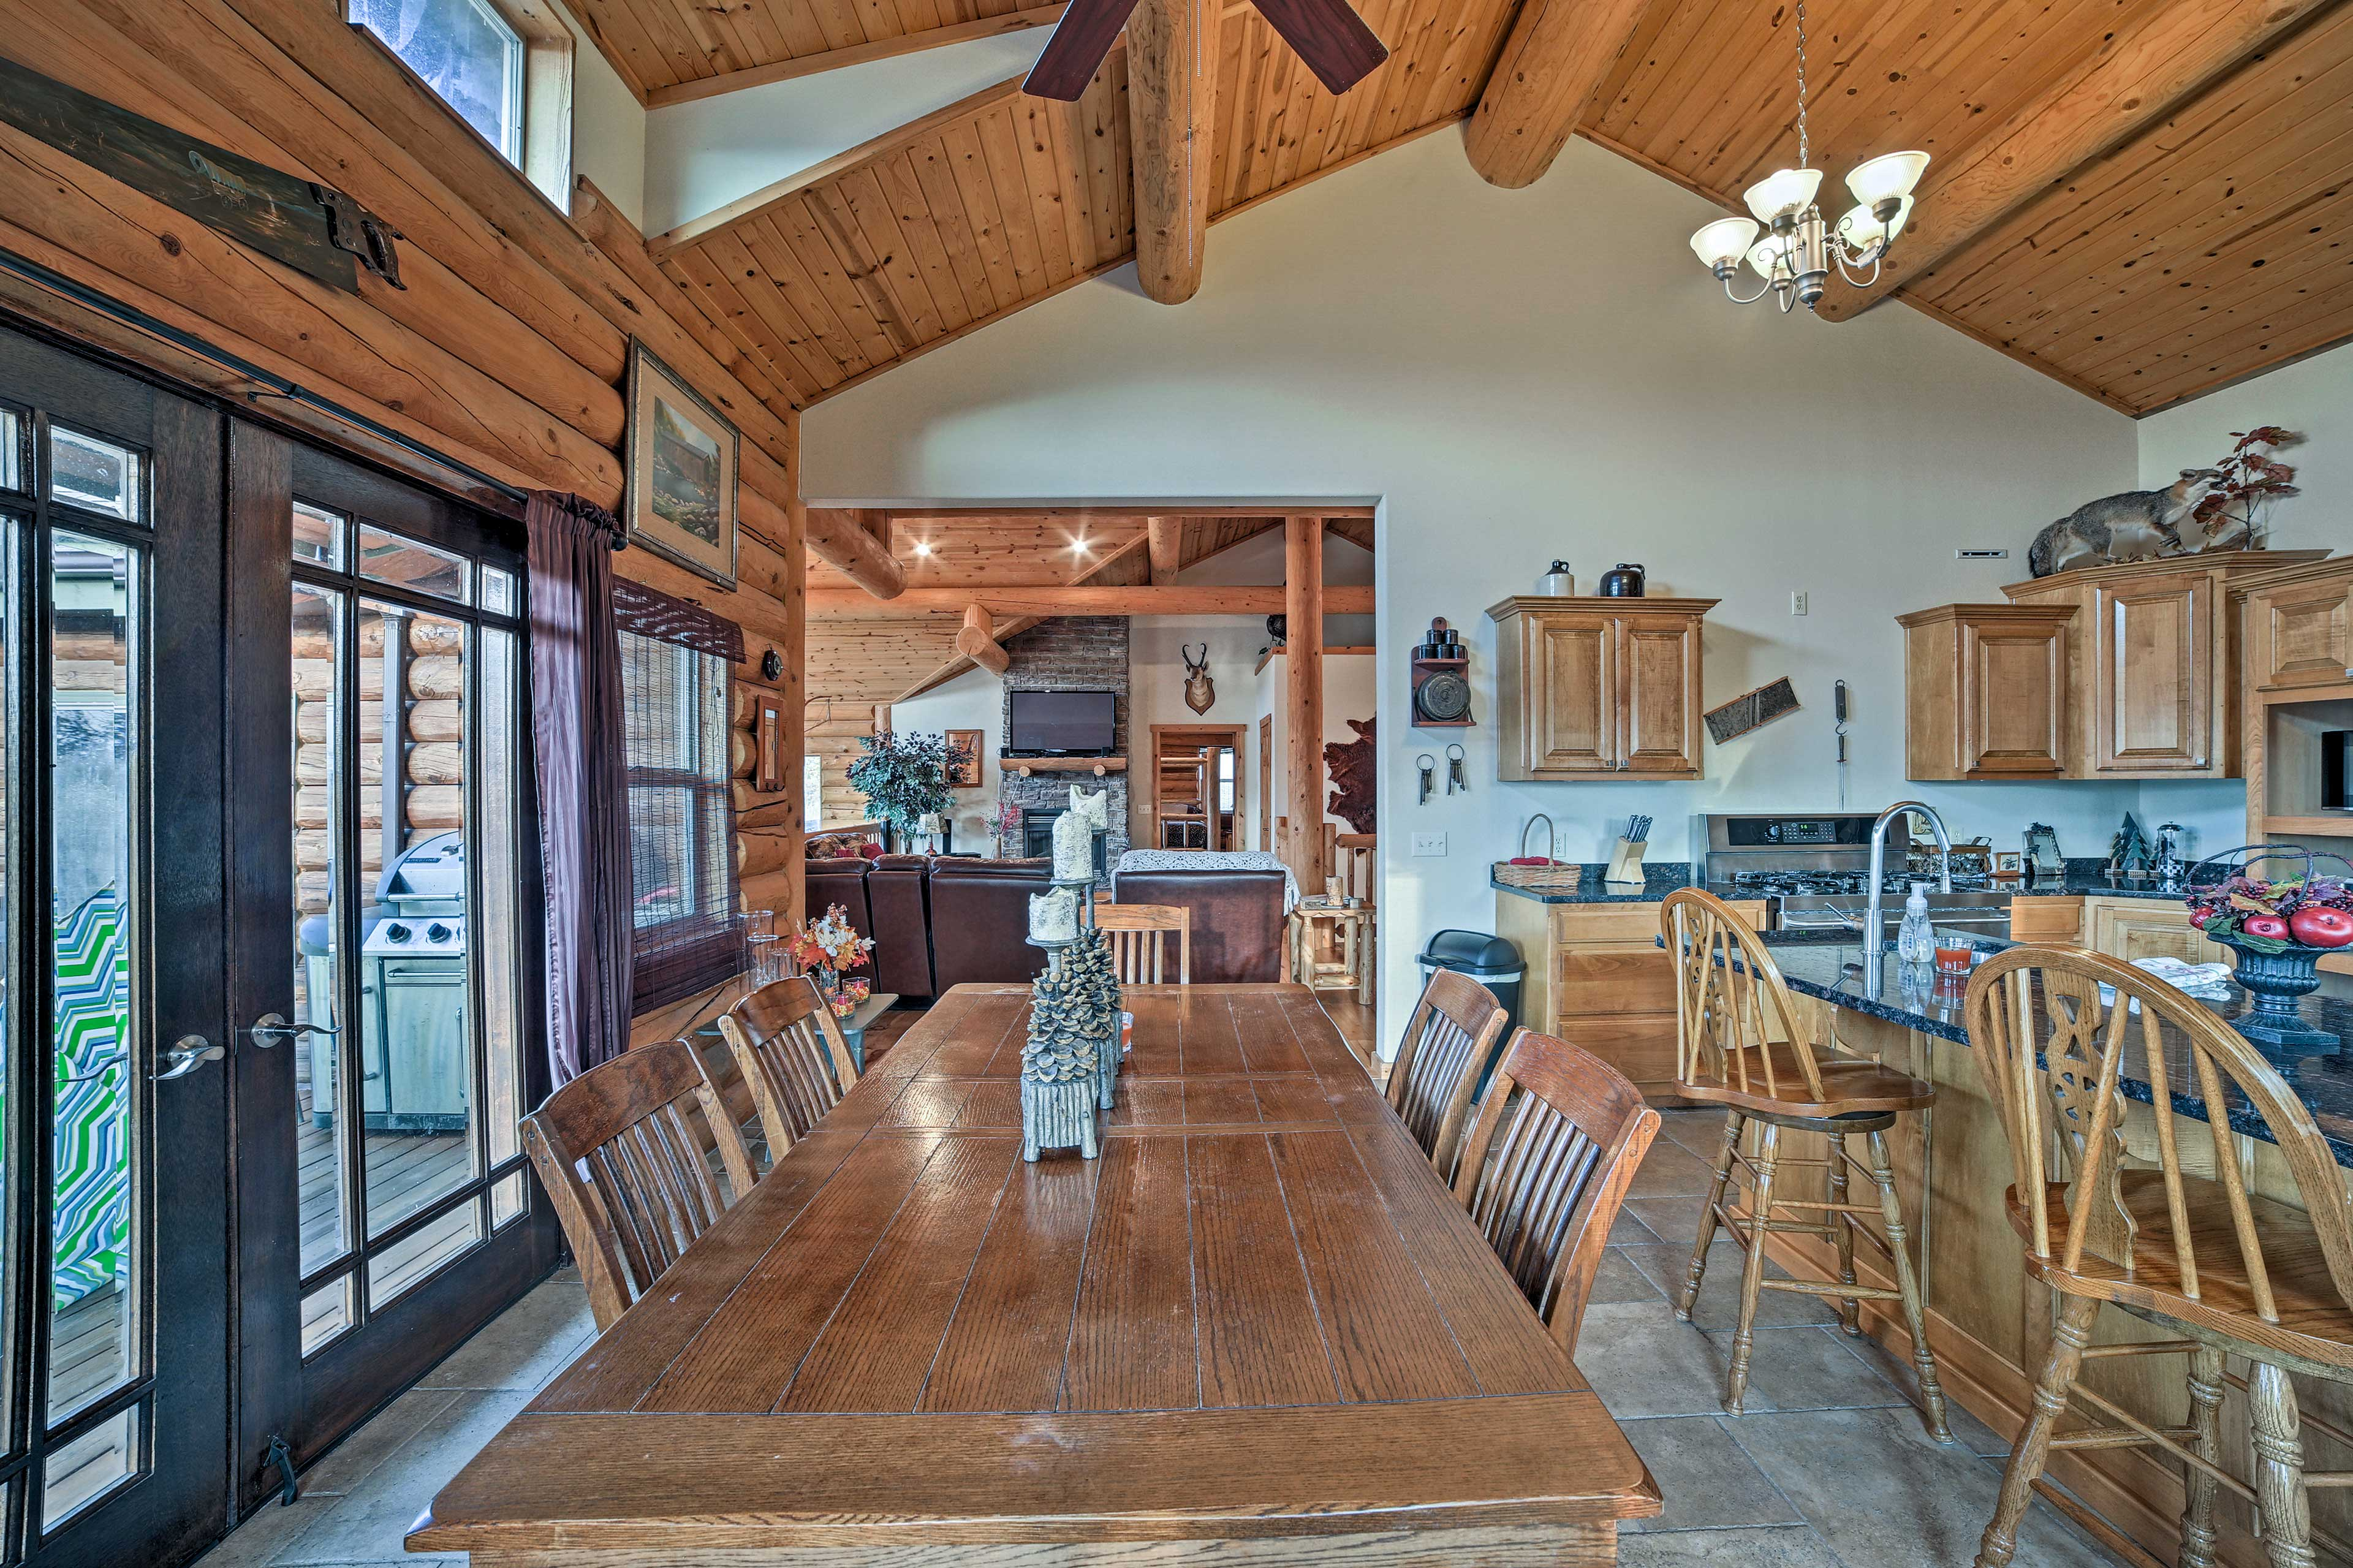 The fully equipped kitchen offers plenty of seating.